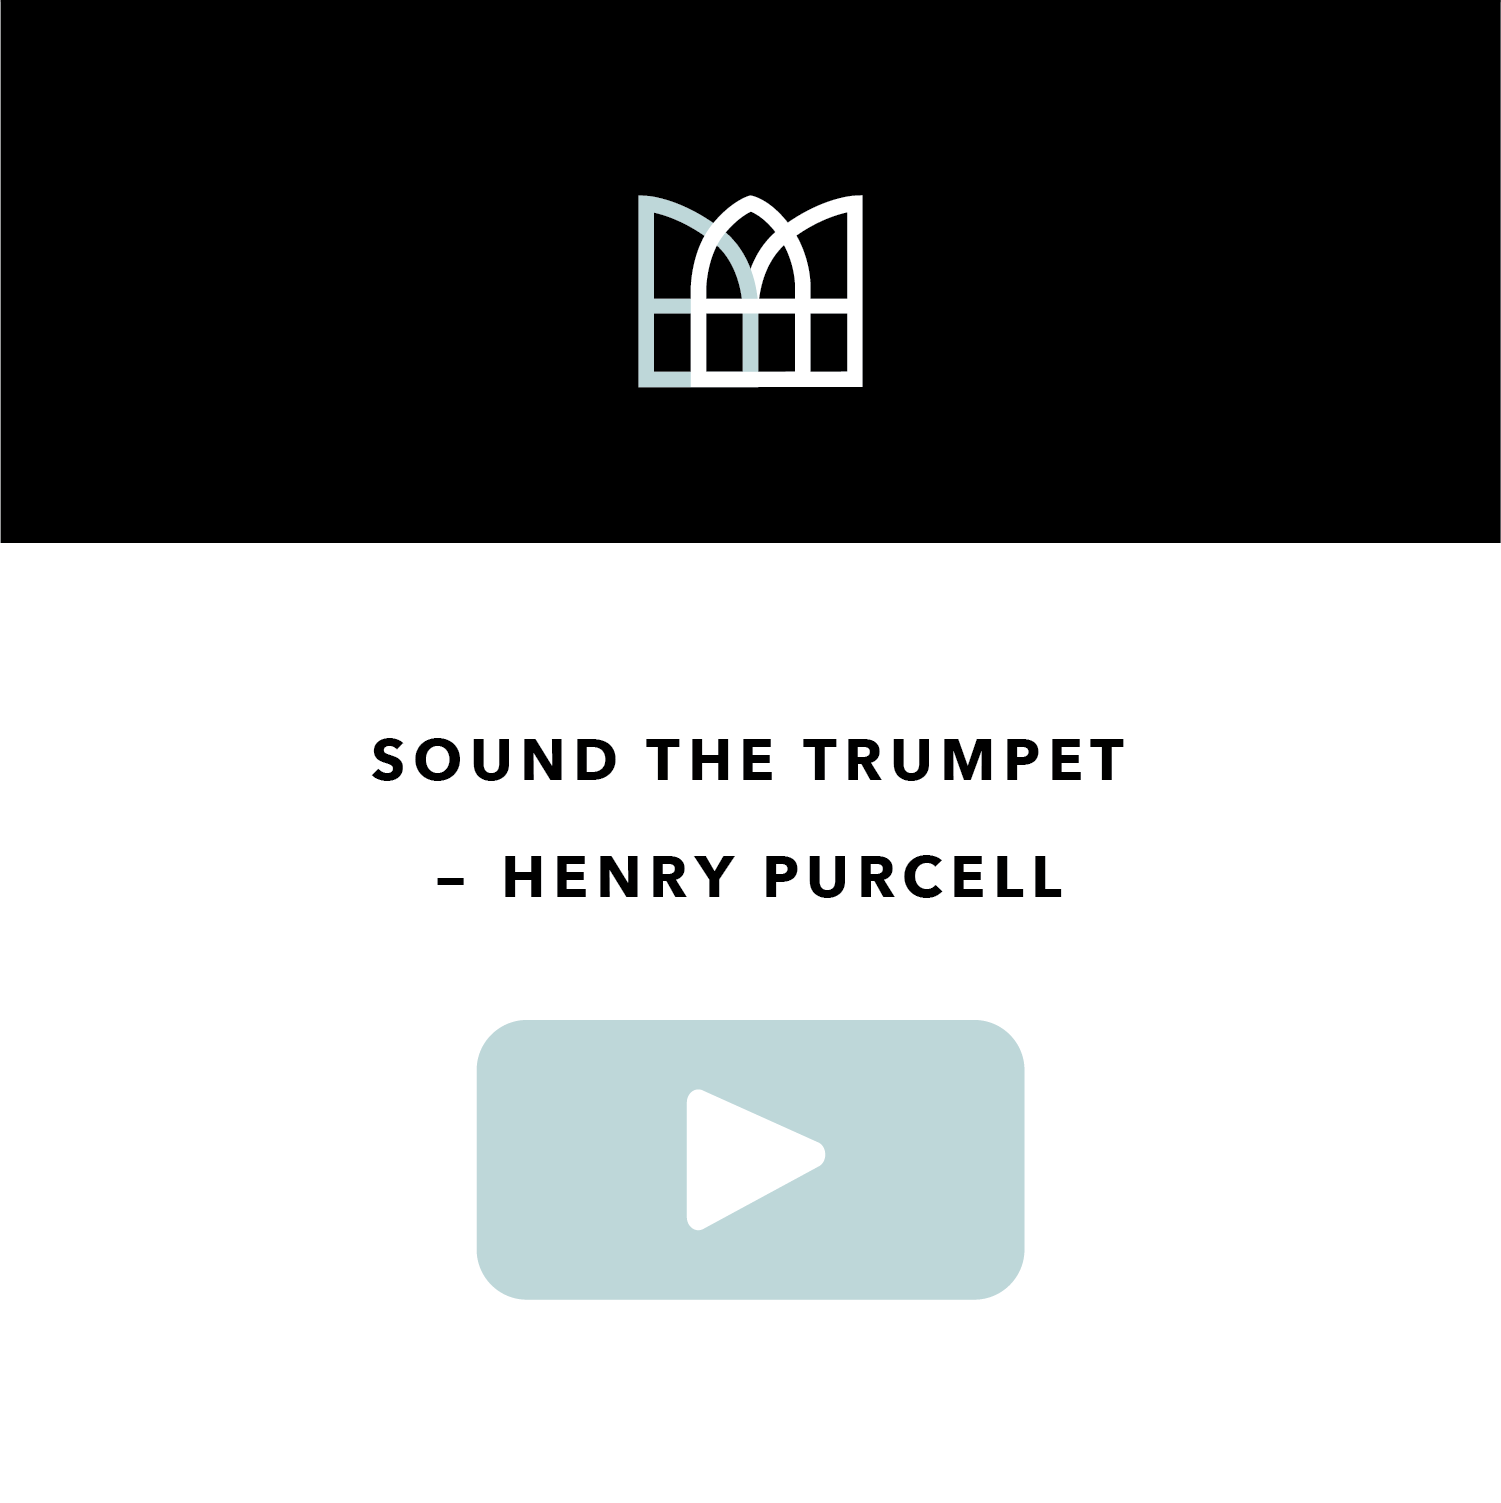 Sound the Trumpet - Henry Purcell